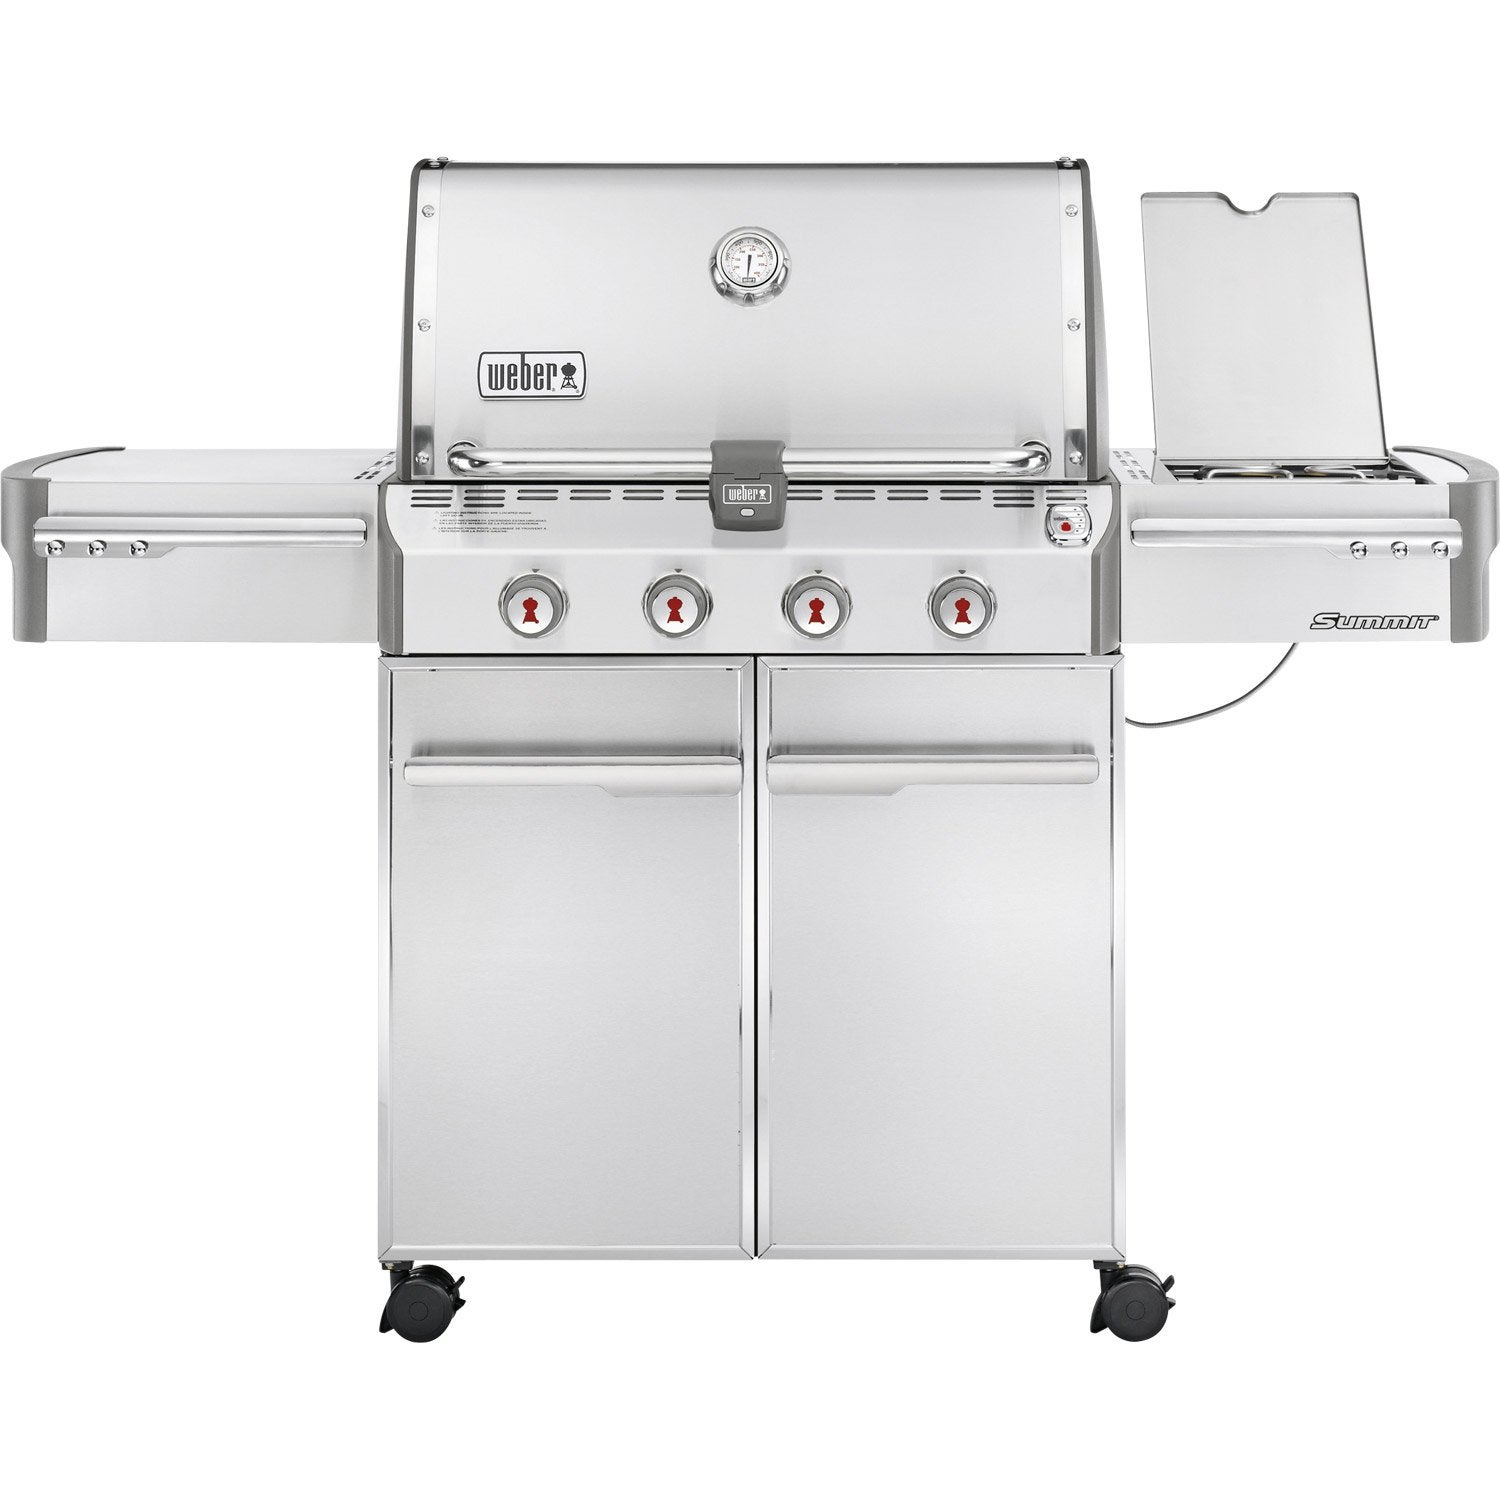 Barbecue au gaz weber summit 4 bruleurs leroy merlin - Barbecue weber a gaz ...